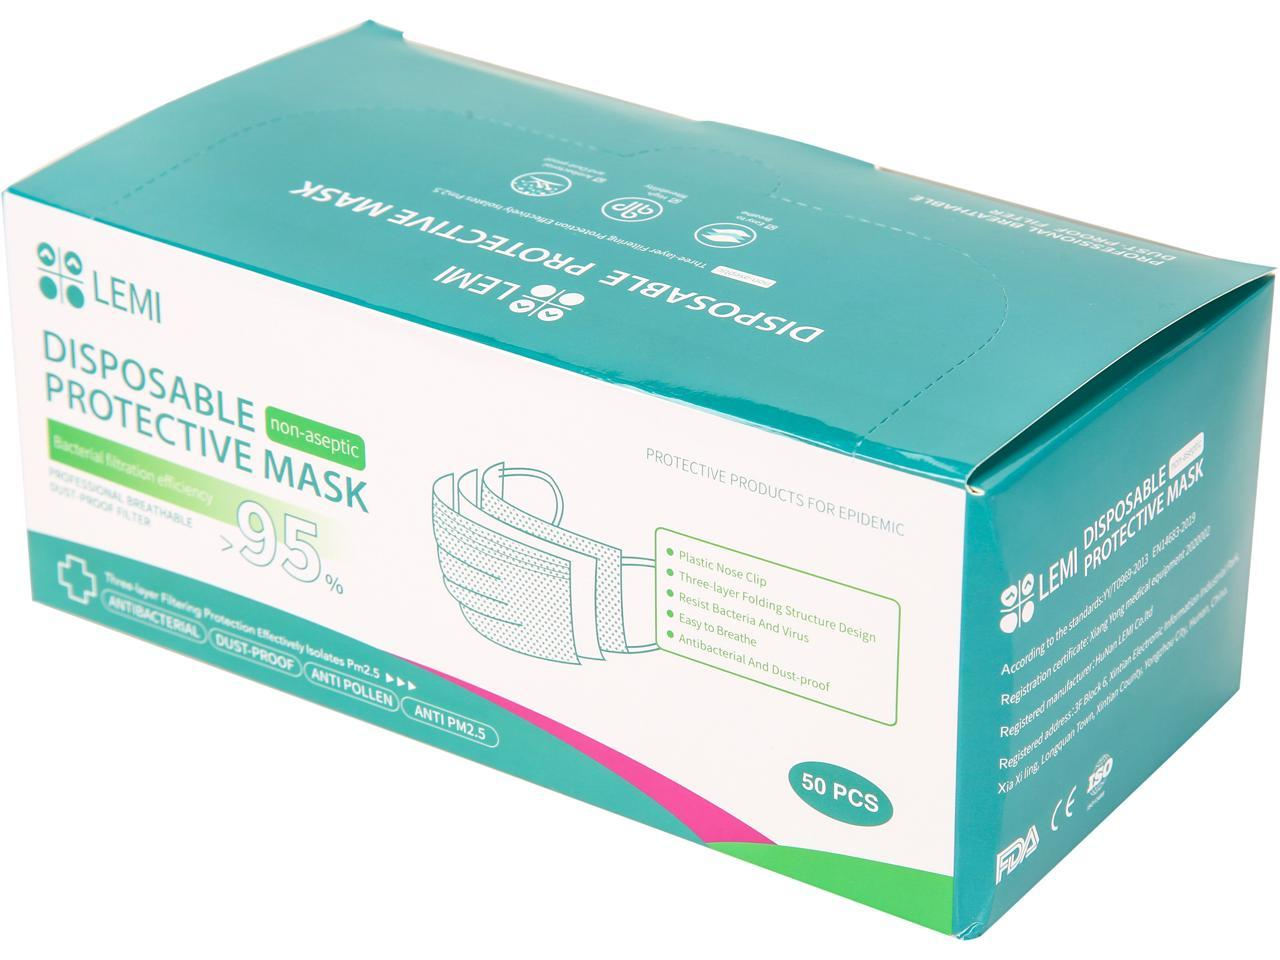 Newegg: LEMI Disposable 3-Layer Protective Mask -50 pcs for